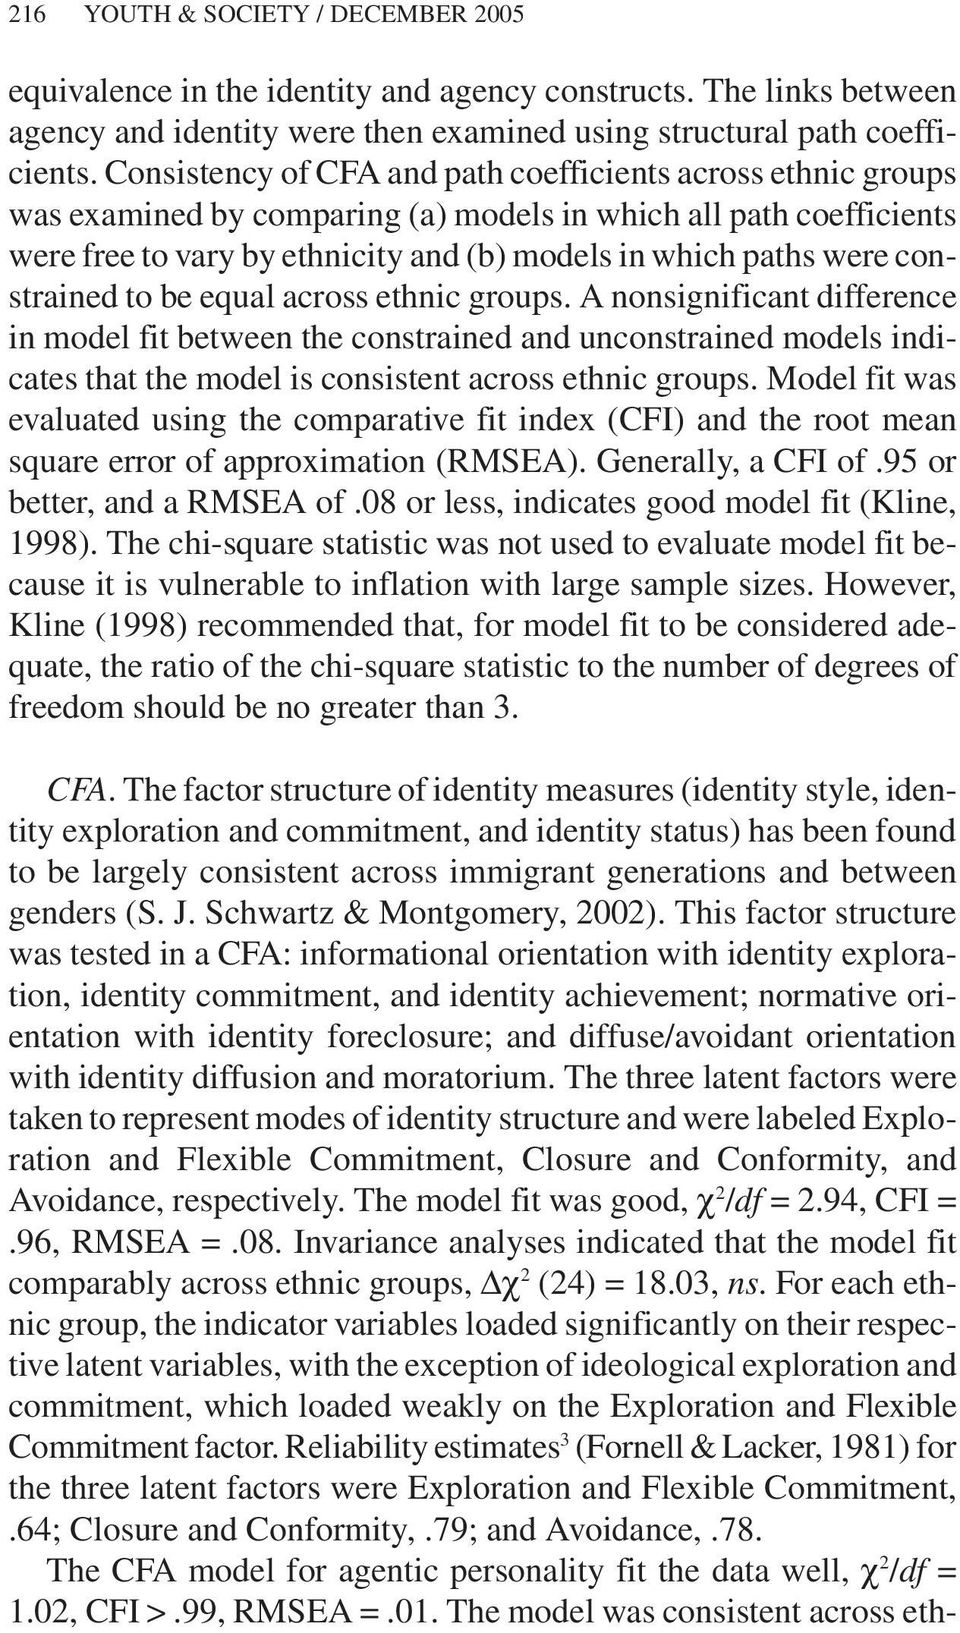 constrained to be equal across ethnic groups. A nonsignificant difference in model fit between the constrained and unconstrained models indicates that the model is consistent across ethnic groups.